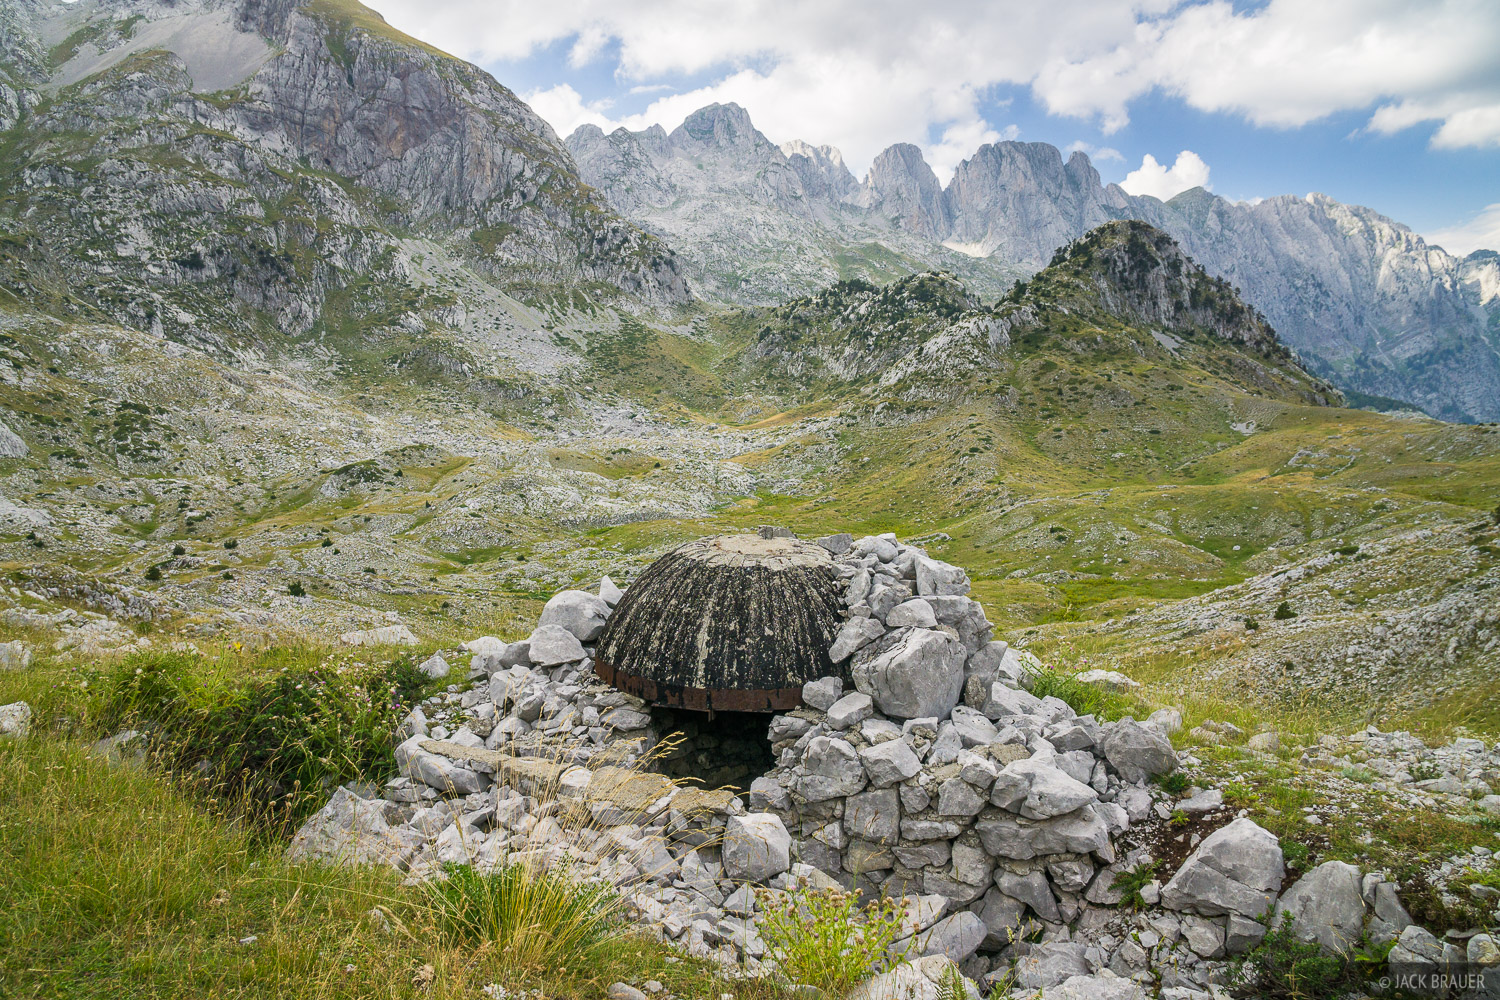 One of the many old hidden bunkers scattered in the mountainsides near the border of Albania and Montenegro.